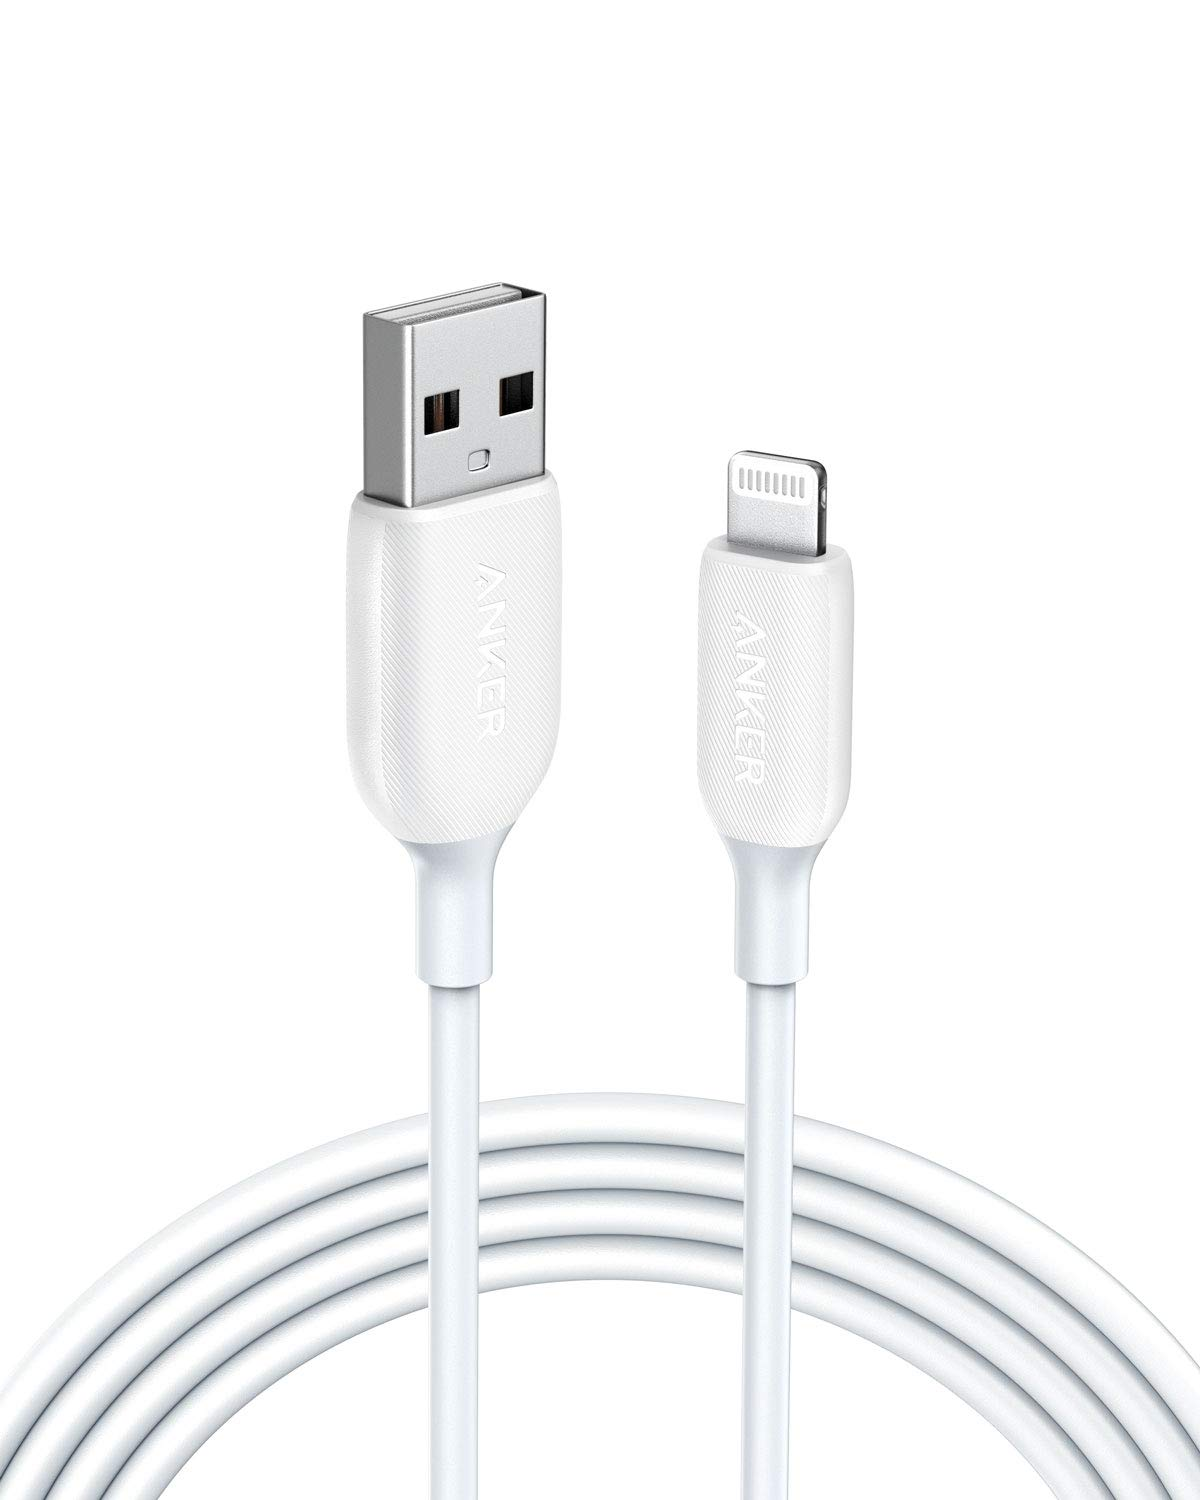 iPhone Charger, Anker Powerline III Lightning Cable 6 Foot iPhone Charger Cord MFi Certified for iPhone 11 Pro Max, 11 Pro, X, Xs, Xr, Xs Max, 8, 8 Plus, 7, 7 Plus, 6 and More, Ultra Durable (White)